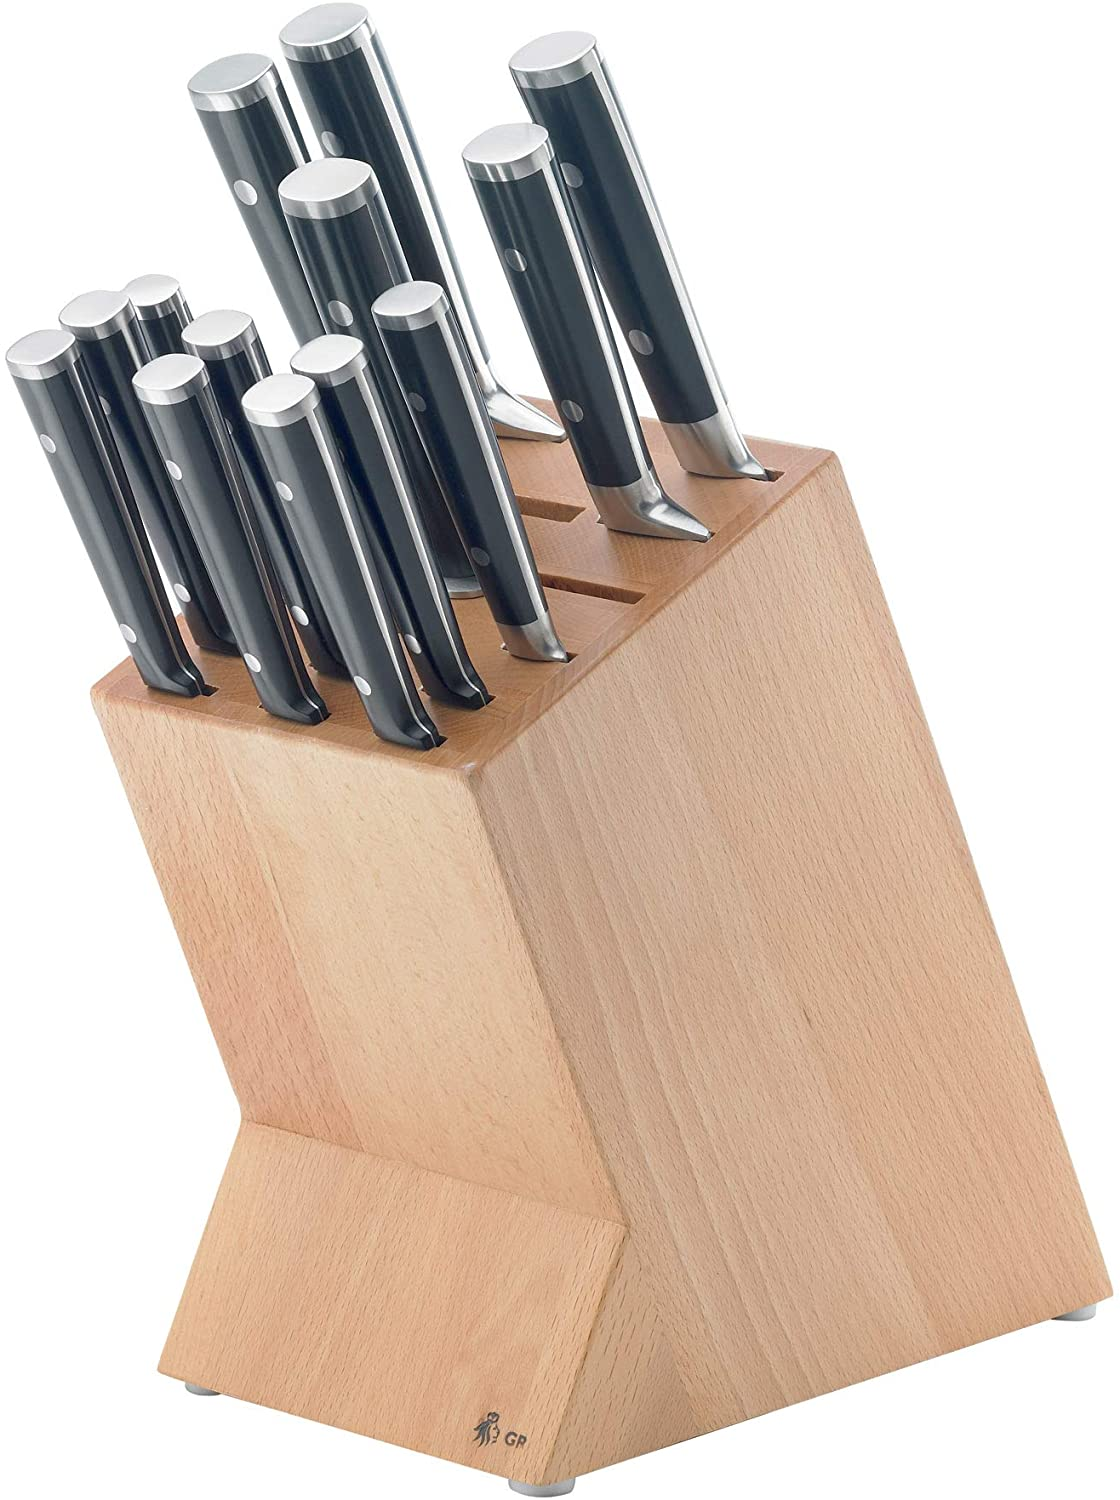 Gordon Ramsay by Royal Doulton 14-Piece Knife Block Set